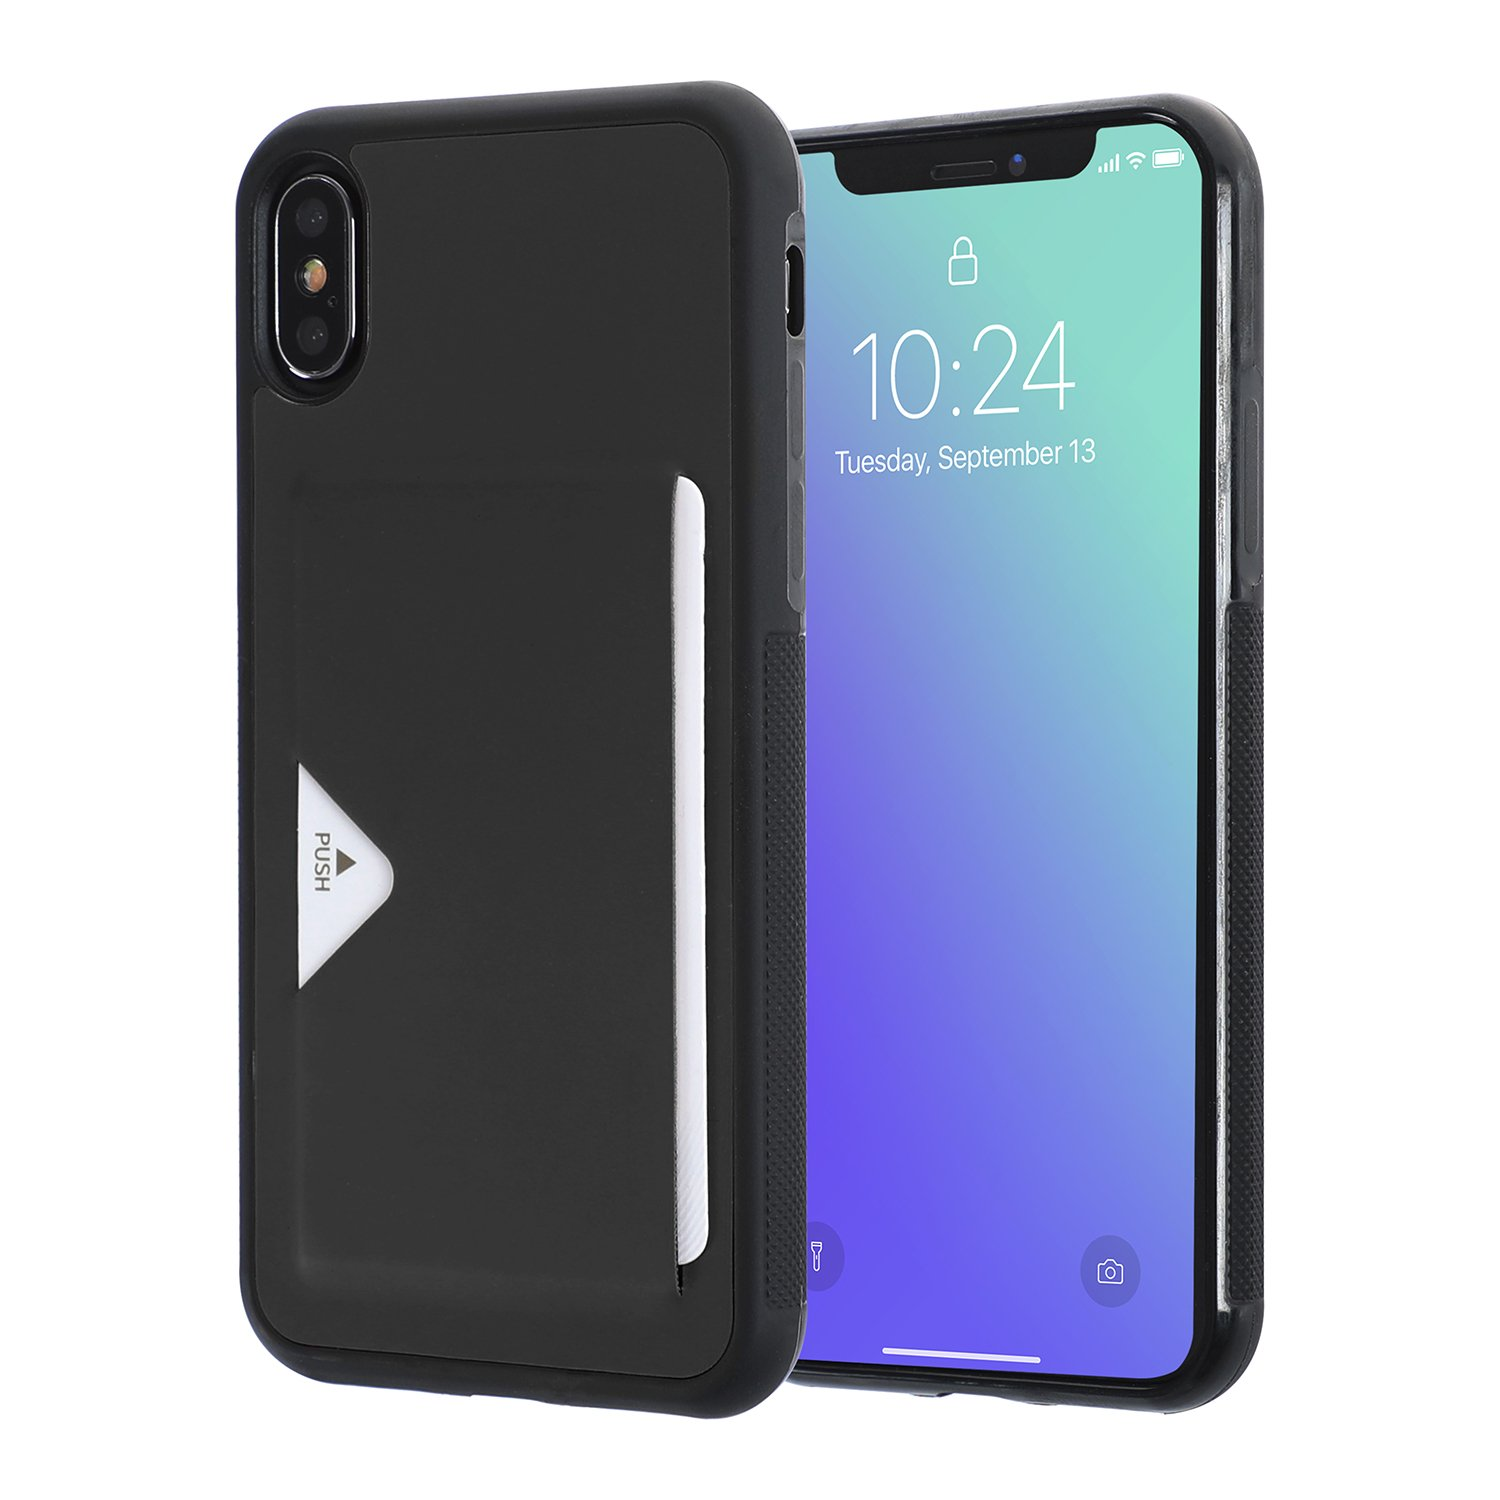 iPhone X Case,iPhone 10 Slim TPU Case Handcrafted Wallet Case Cover with ID Credit Card Slot Holder Protective Shell Slot Case Enhanced Grip Lightweight for Apple iPhone X/iPhone10 5.8''2017-Black